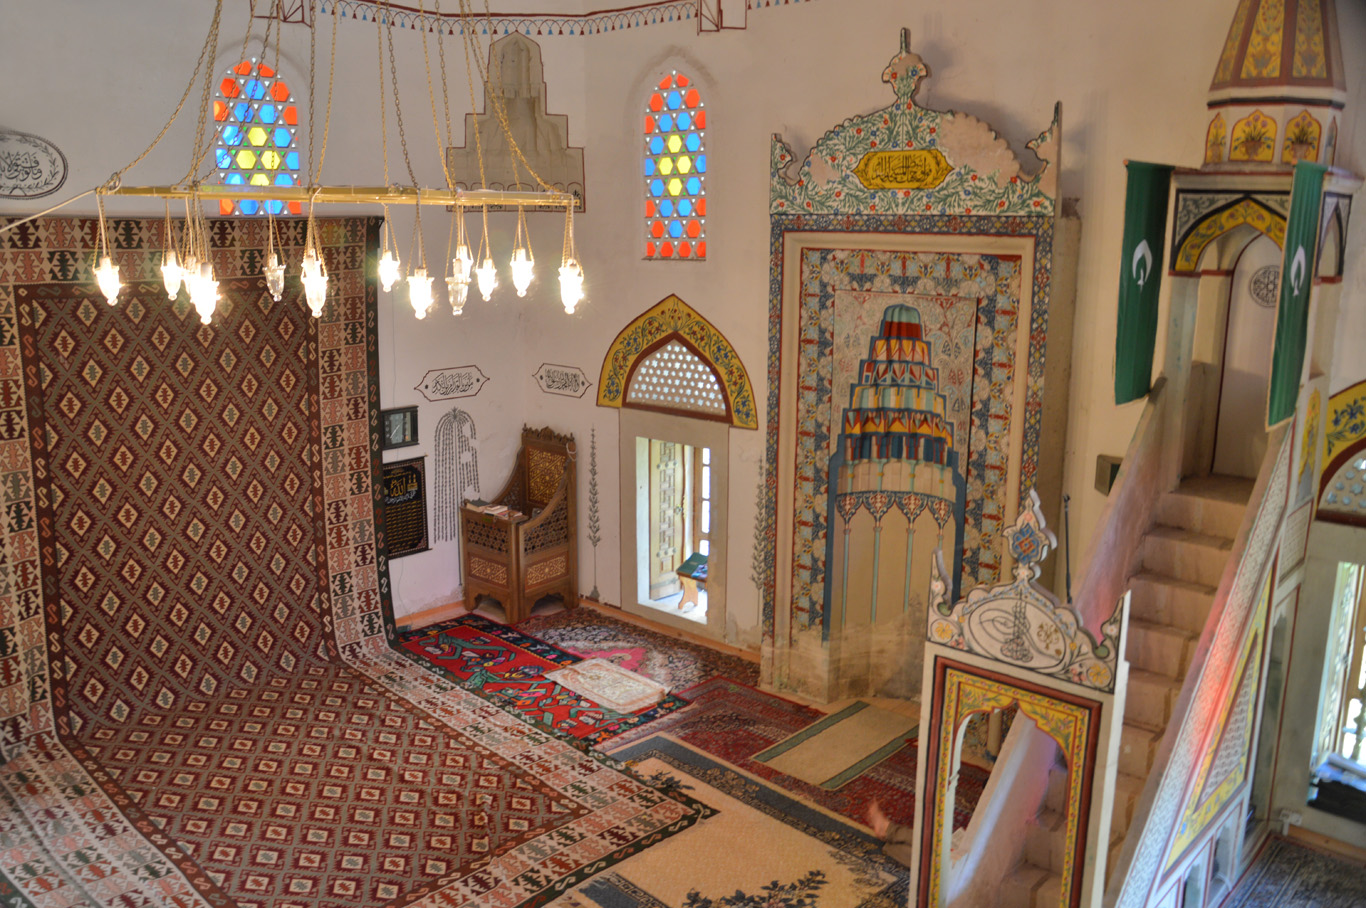 The mosque inside